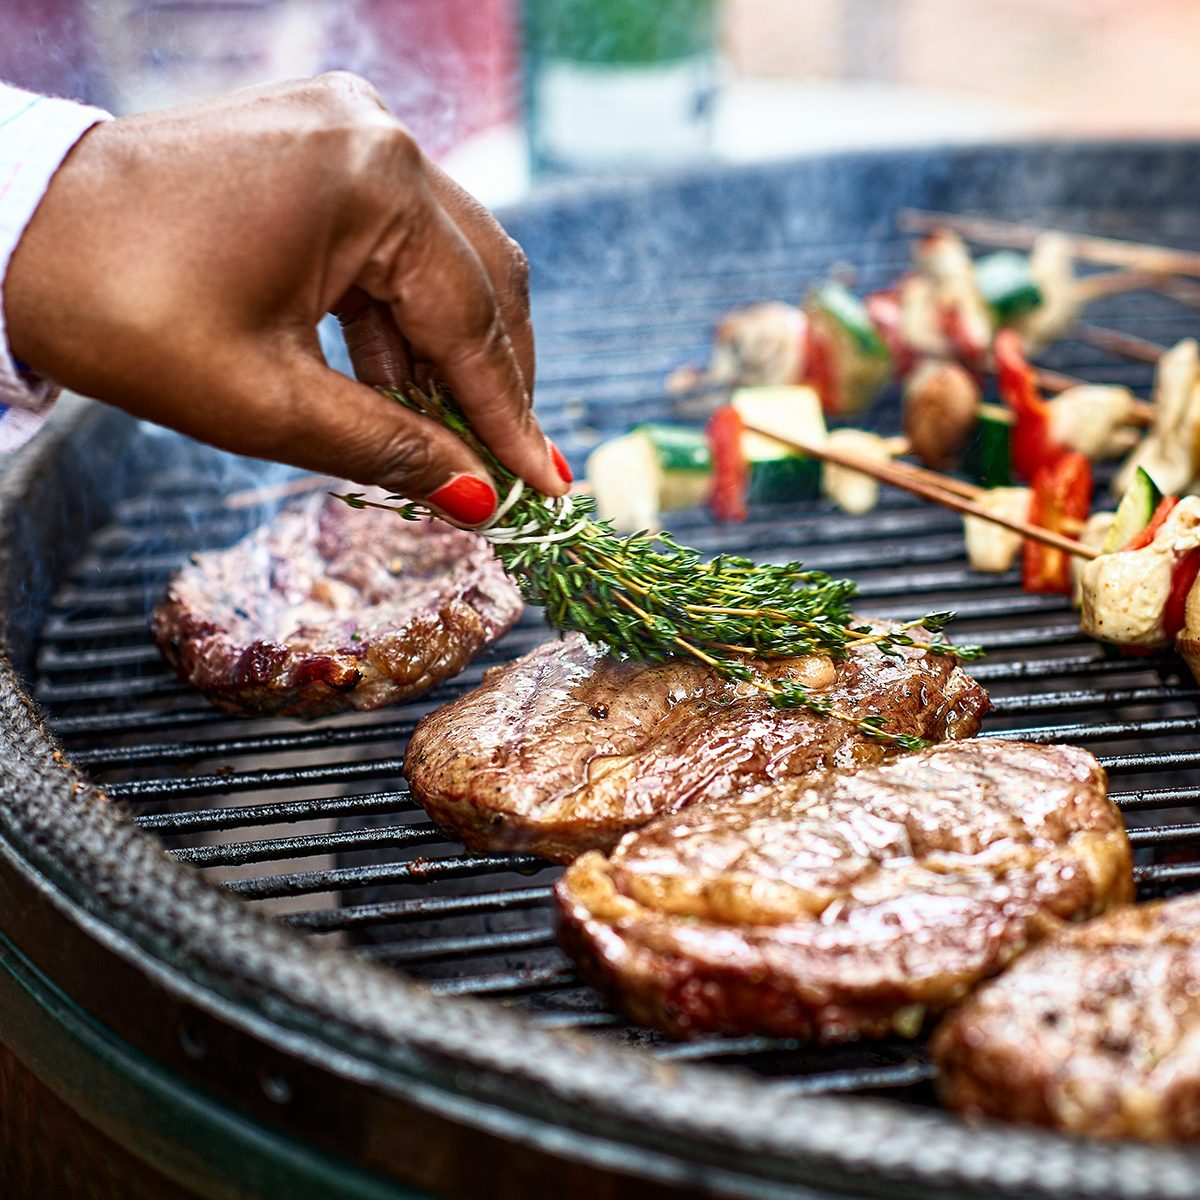 Steaks being seasoned with herbs as they cook on bbq grill with vegetable kebabs, mediterranean food, healthy lifestyle, food and drink